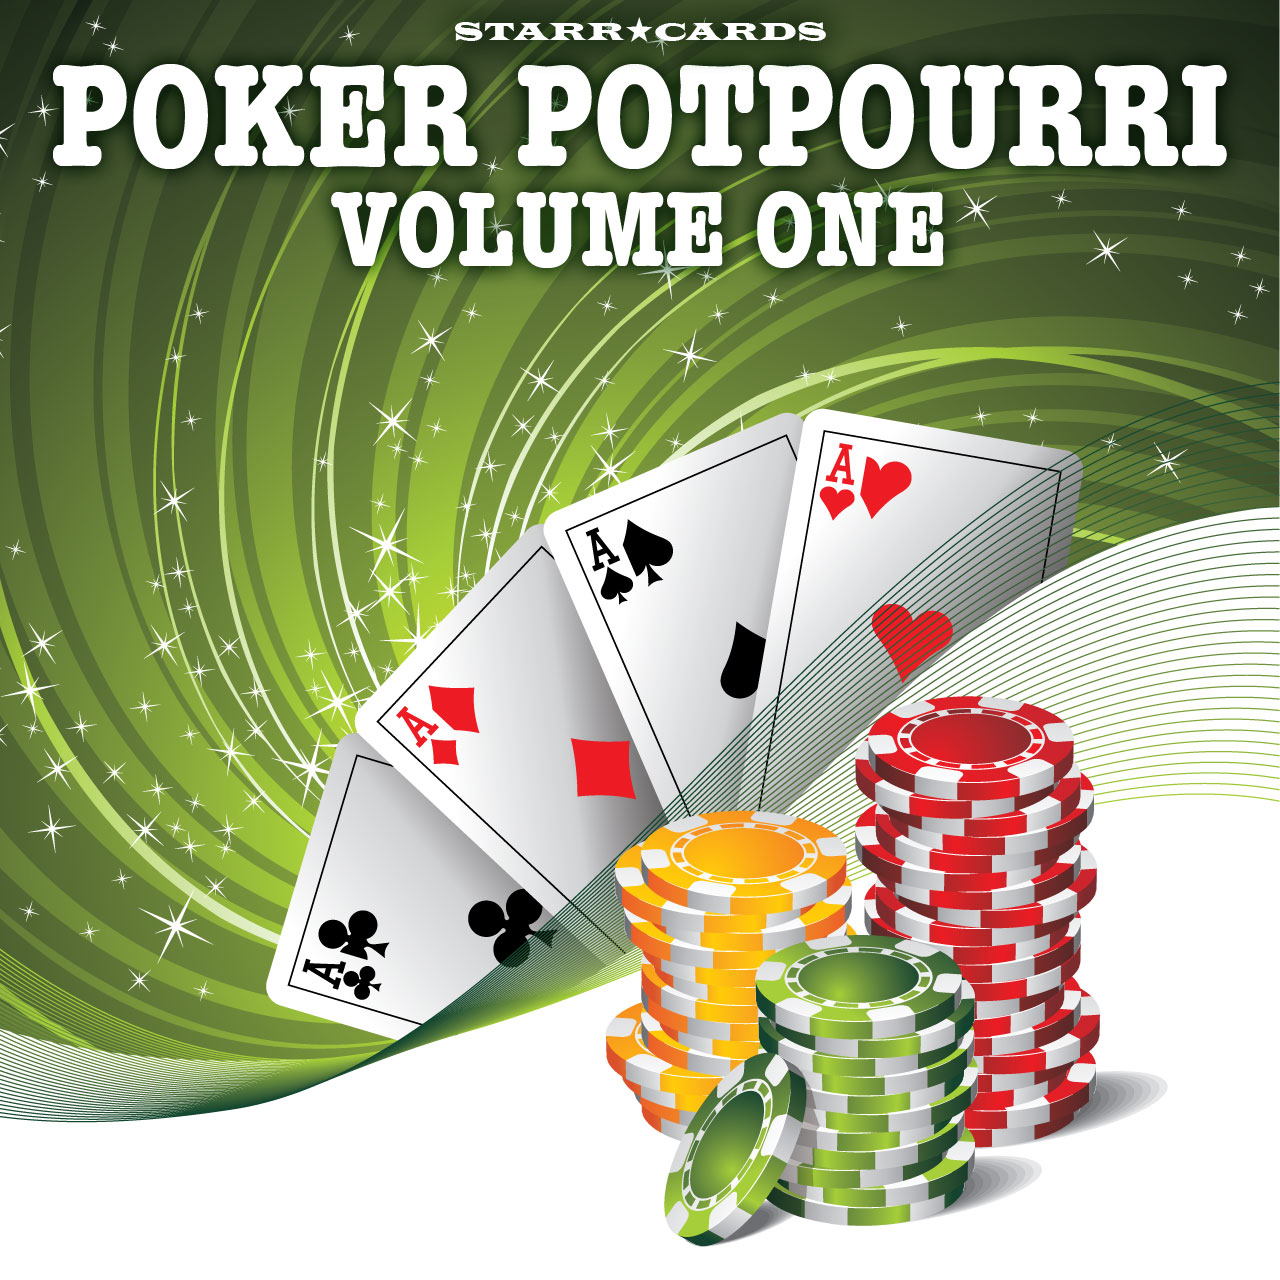 Starr Cards Poker Potpourri Volume One starring Cary Katz